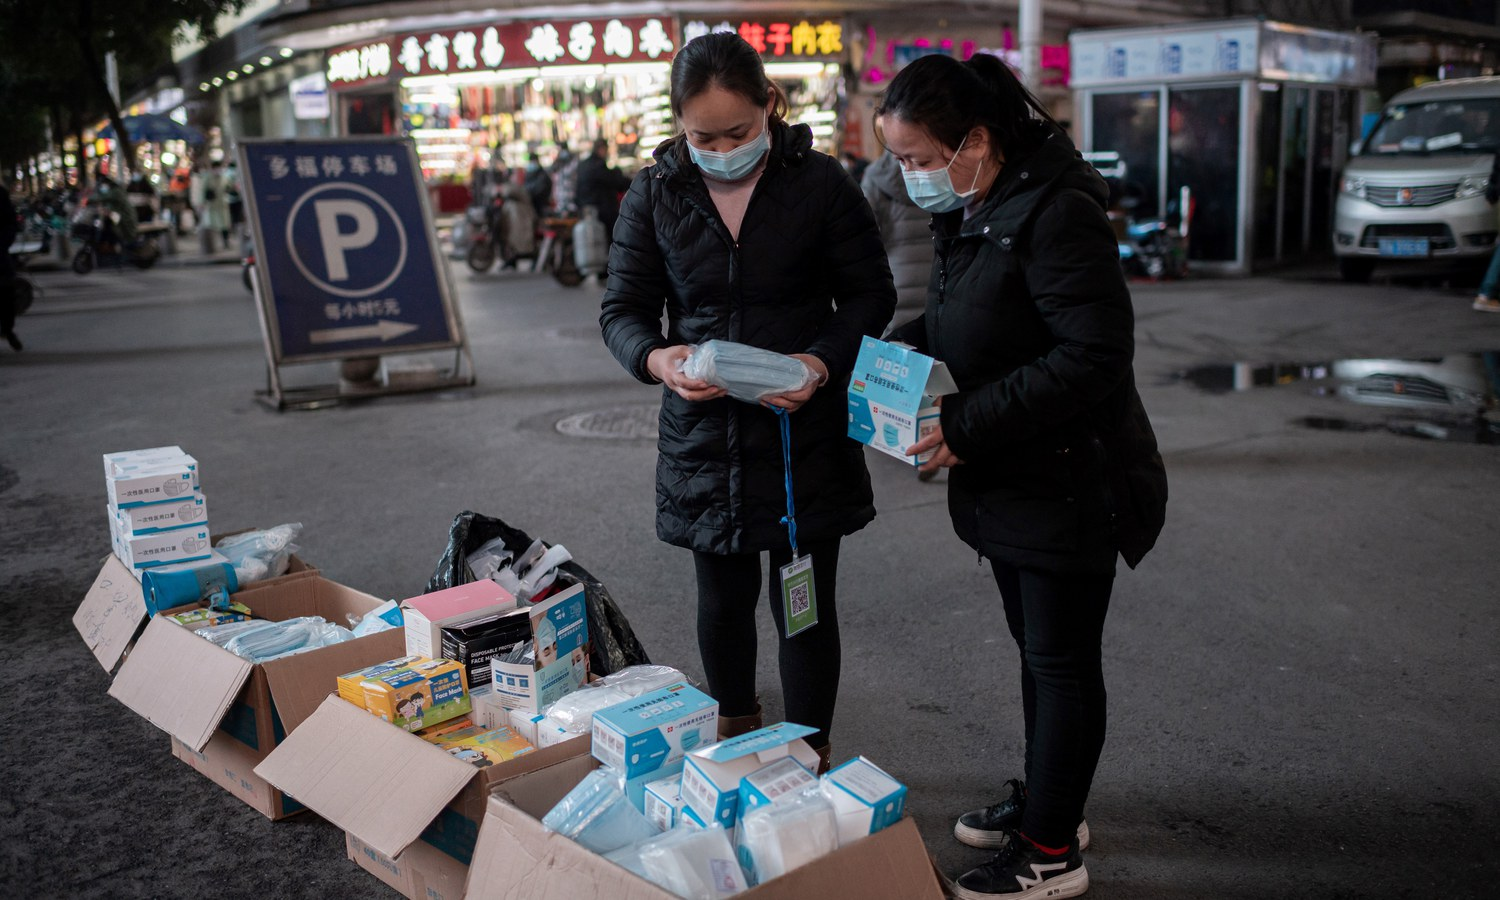 China Covered Up Pandemic, Continues Crackdown on COVID-19 'Rumors'